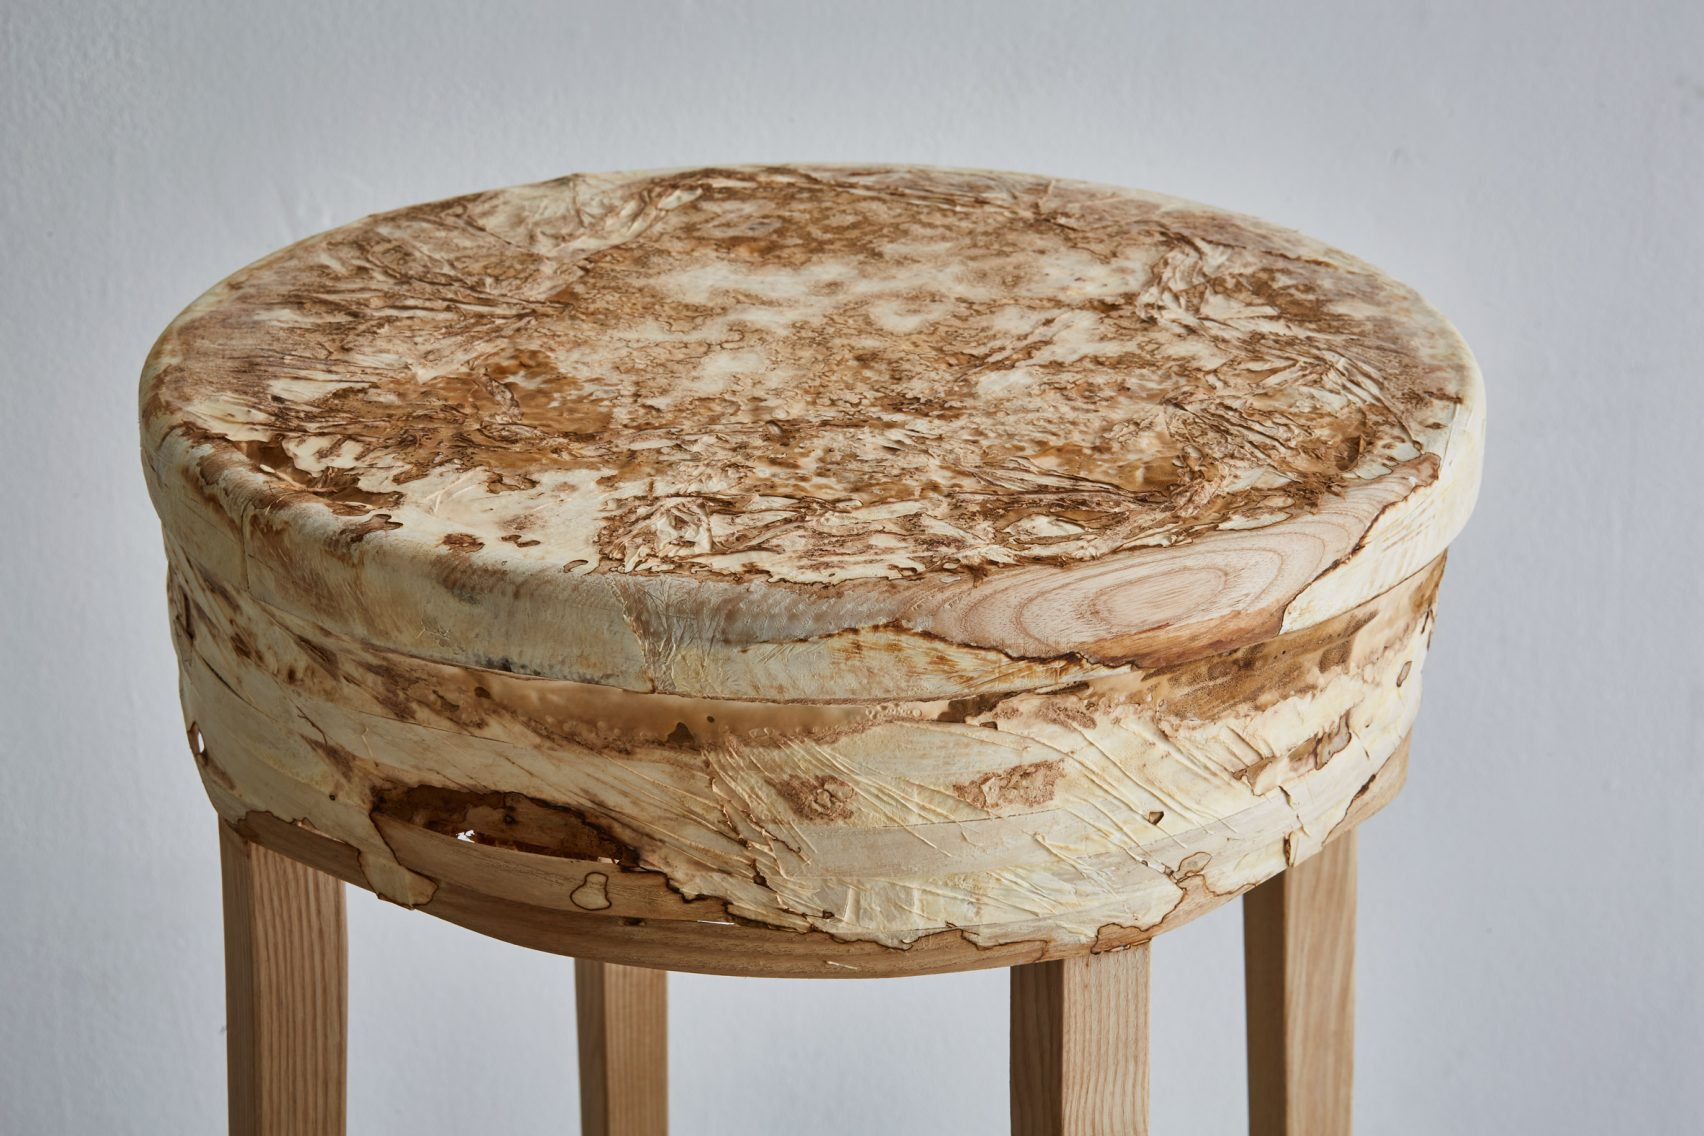 Combining fungi and willow to create functional furniture